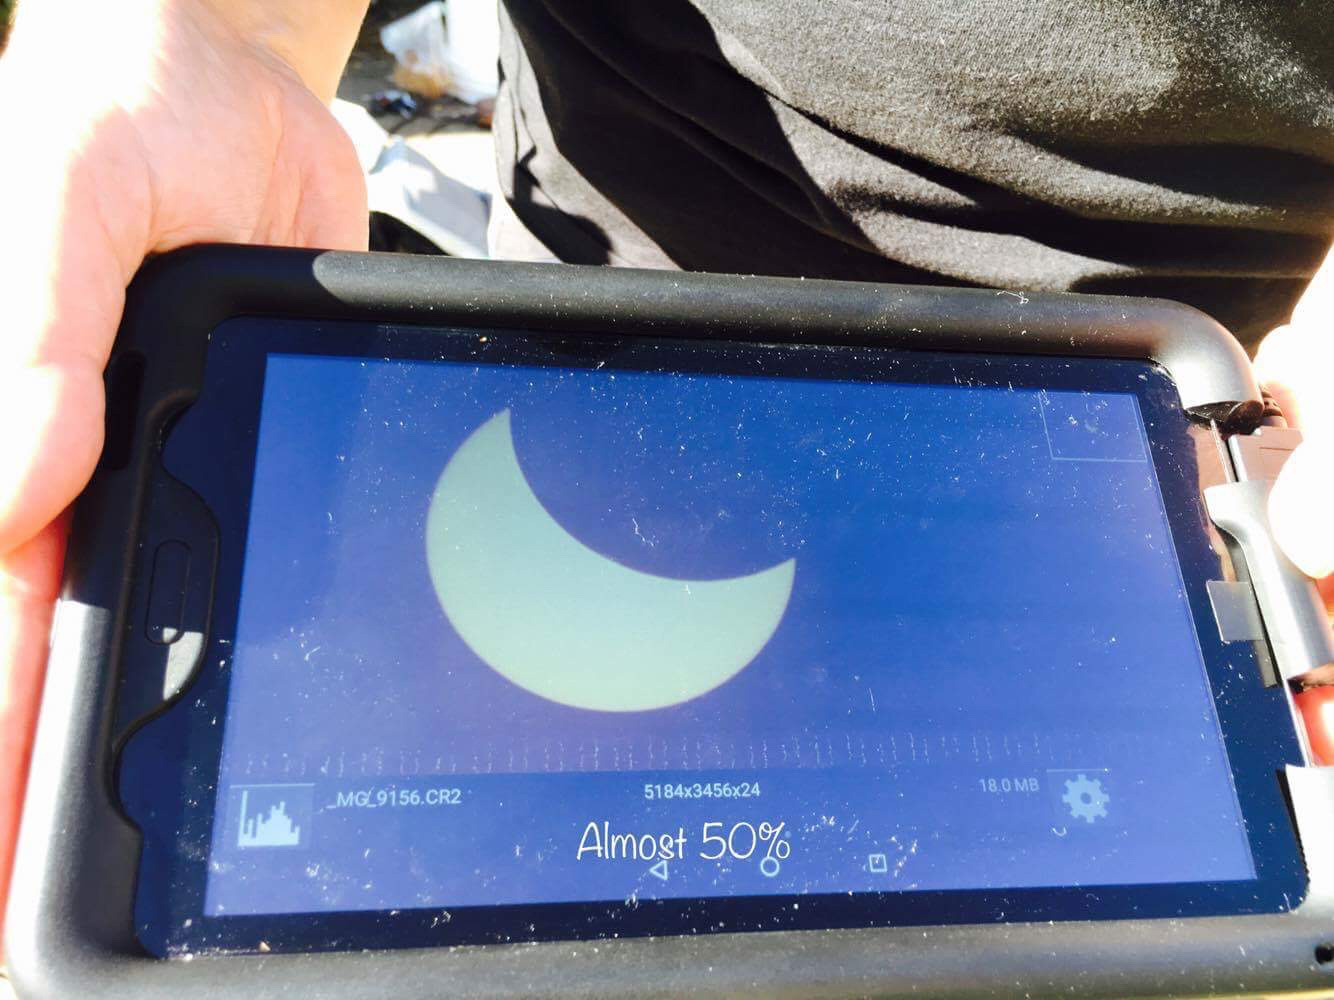 Tablet view of the Corona on the camera at ~50%